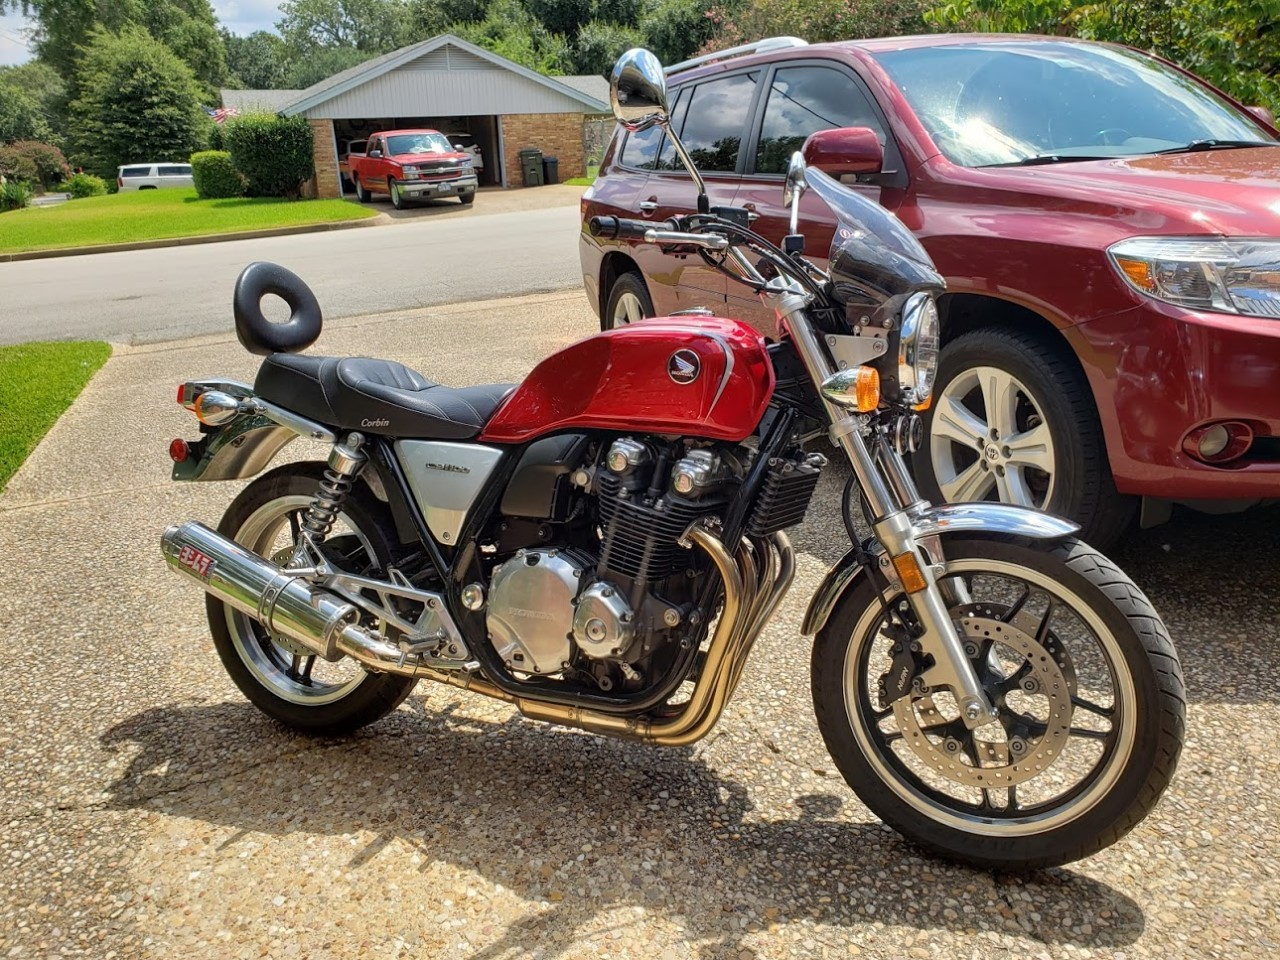 CB360 For Sale - Honda Motorcycles - Cycle Trader